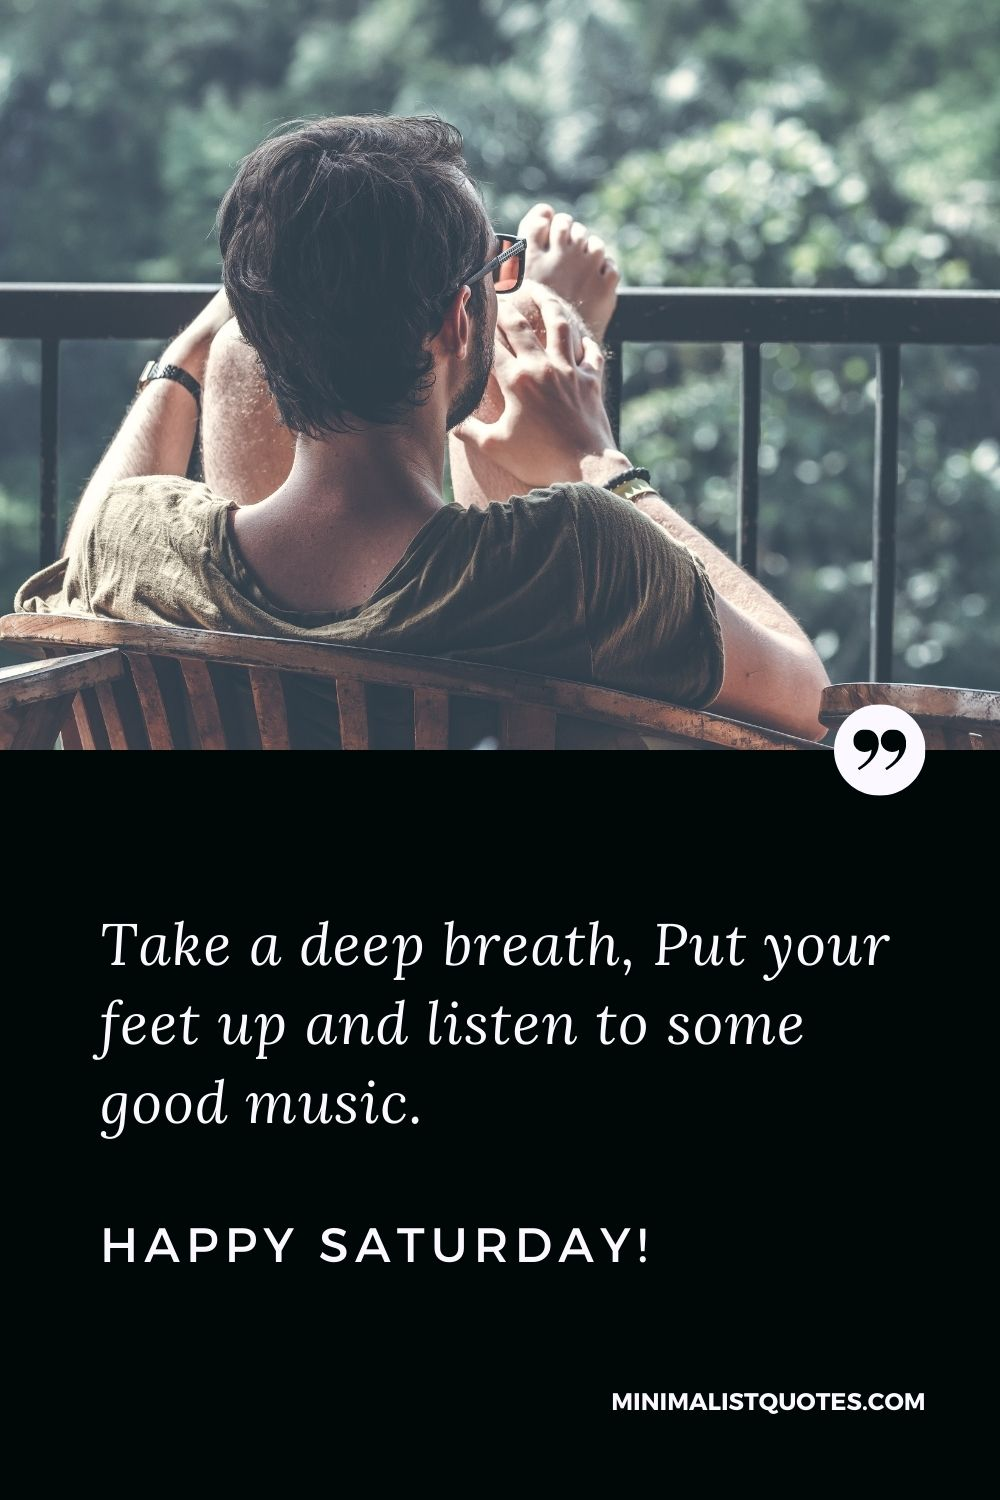 Saturday Quote, Wish & Message With Image: Take a deep breath, Put your feet up and listen to some good music. Happy Saturday!